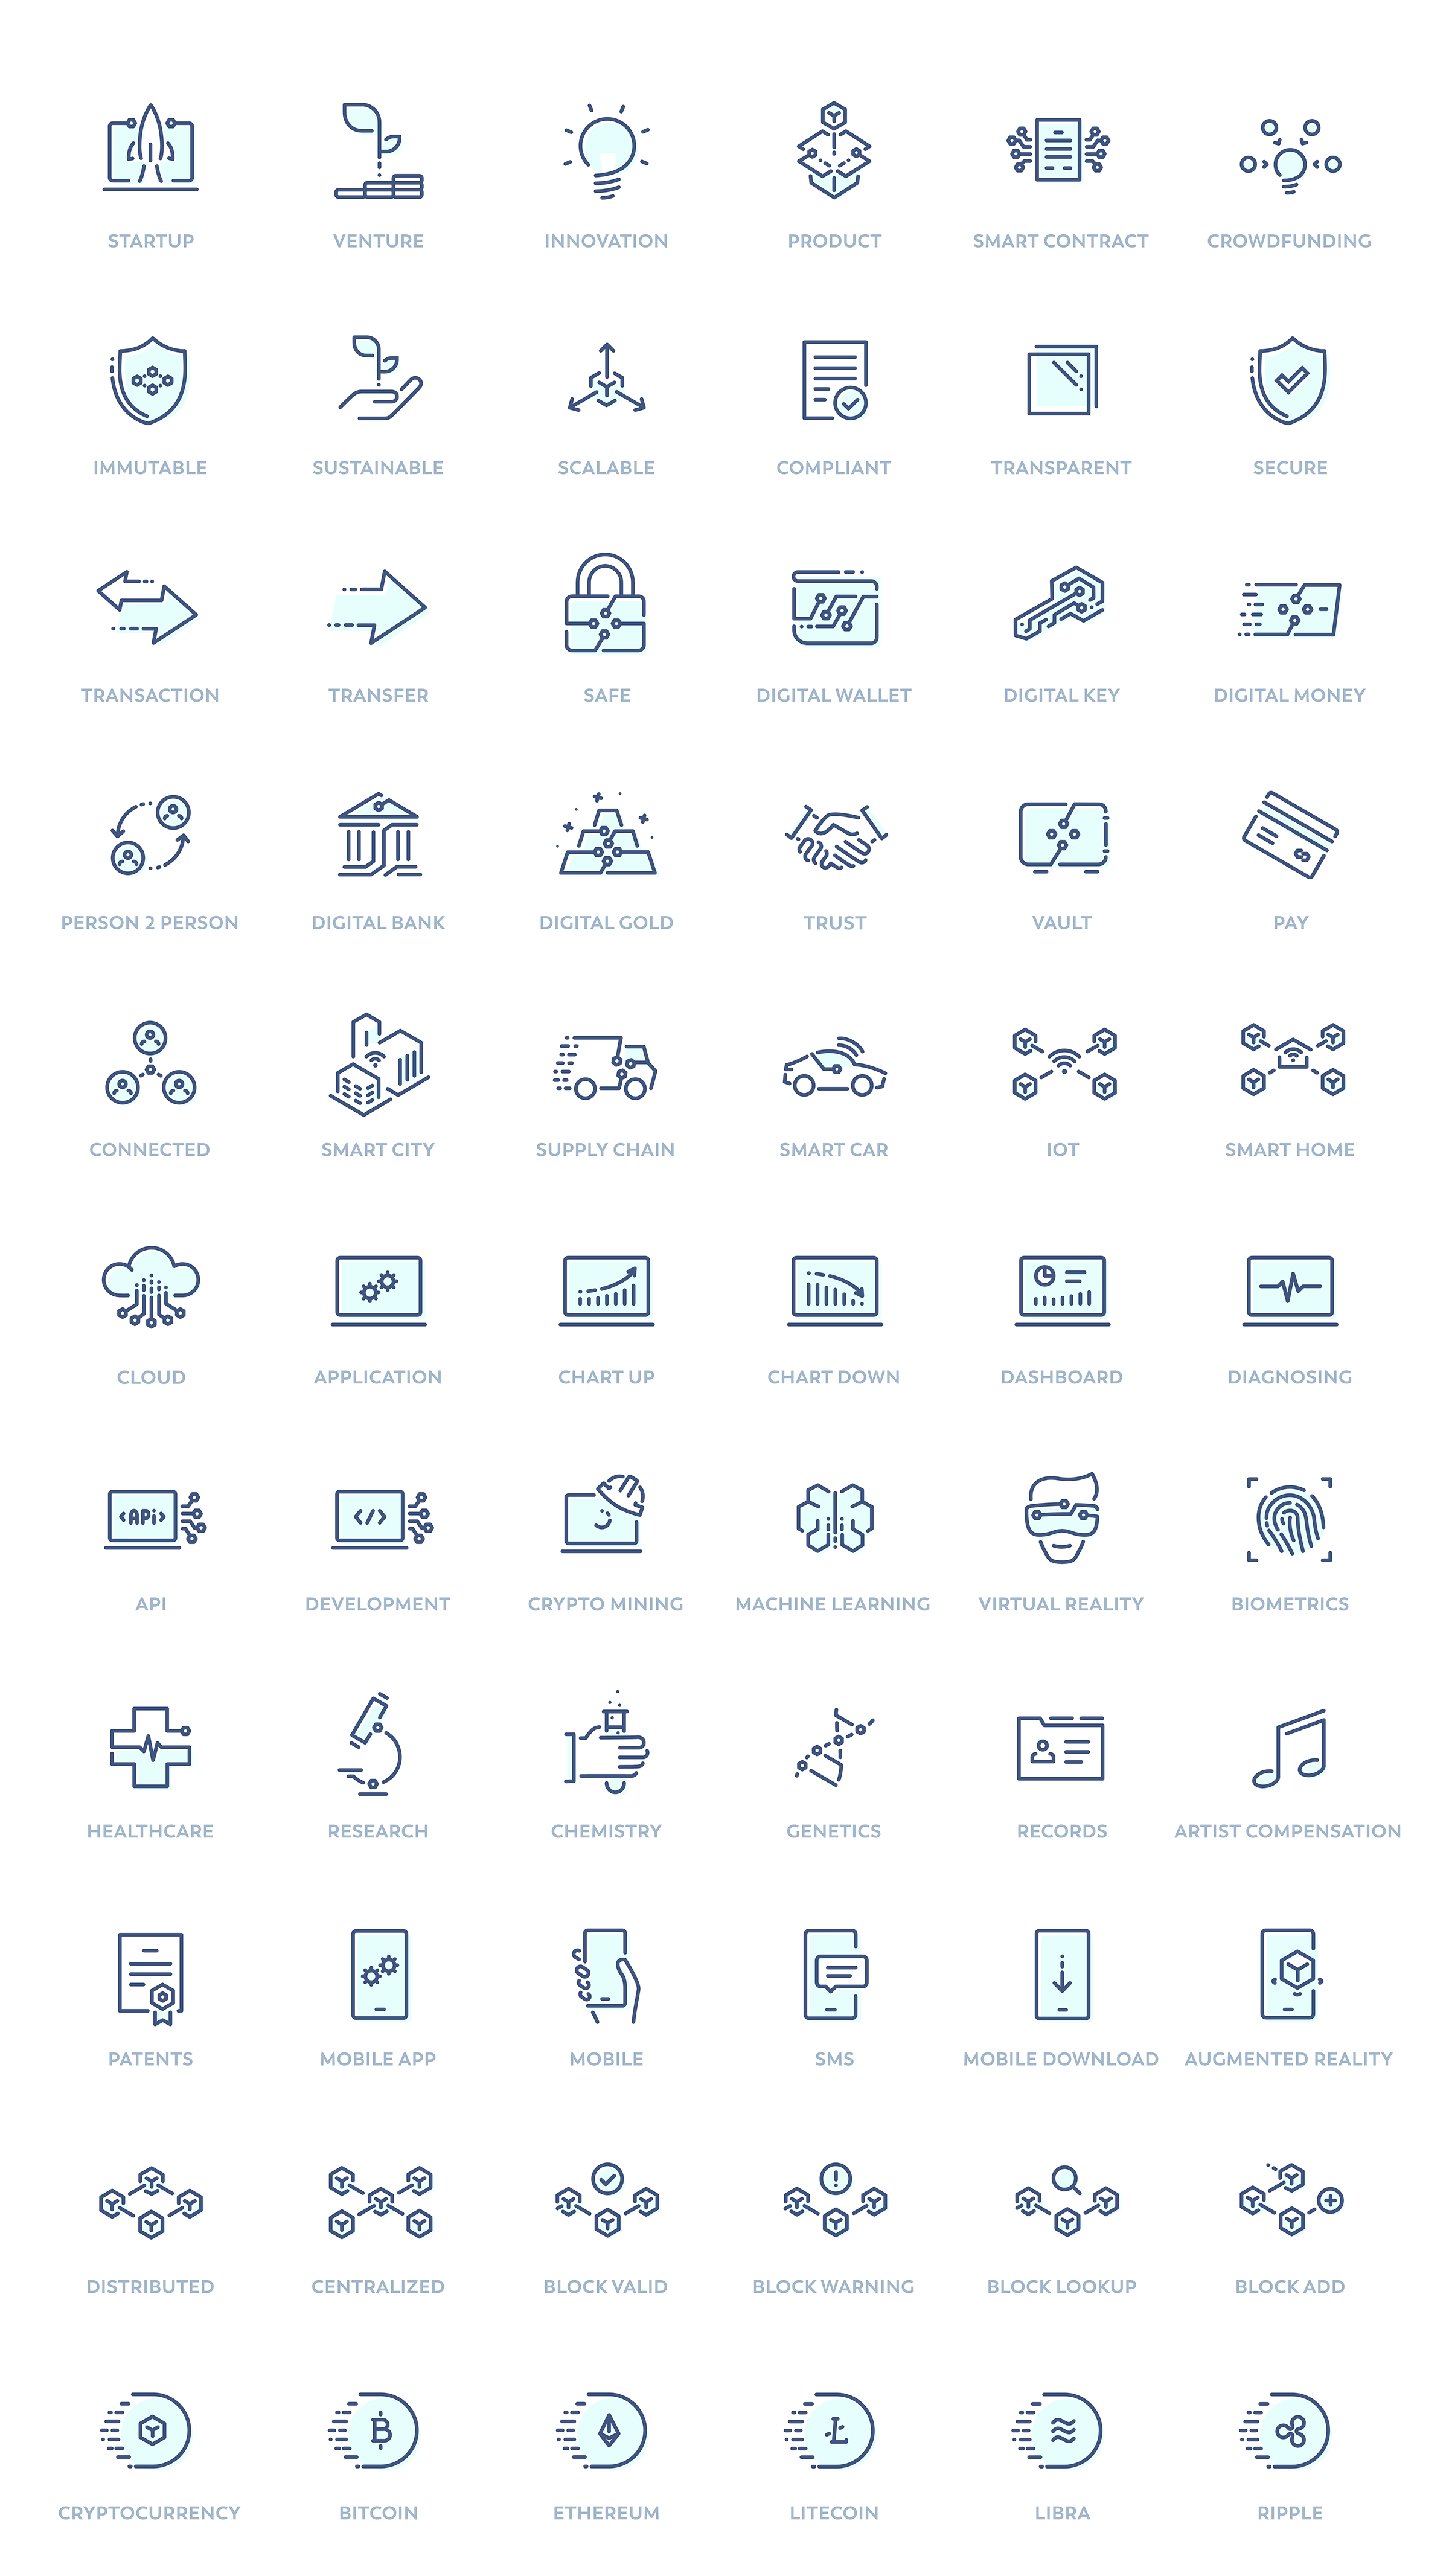 Synergy - Free Icon Pack for Blockchain Companies